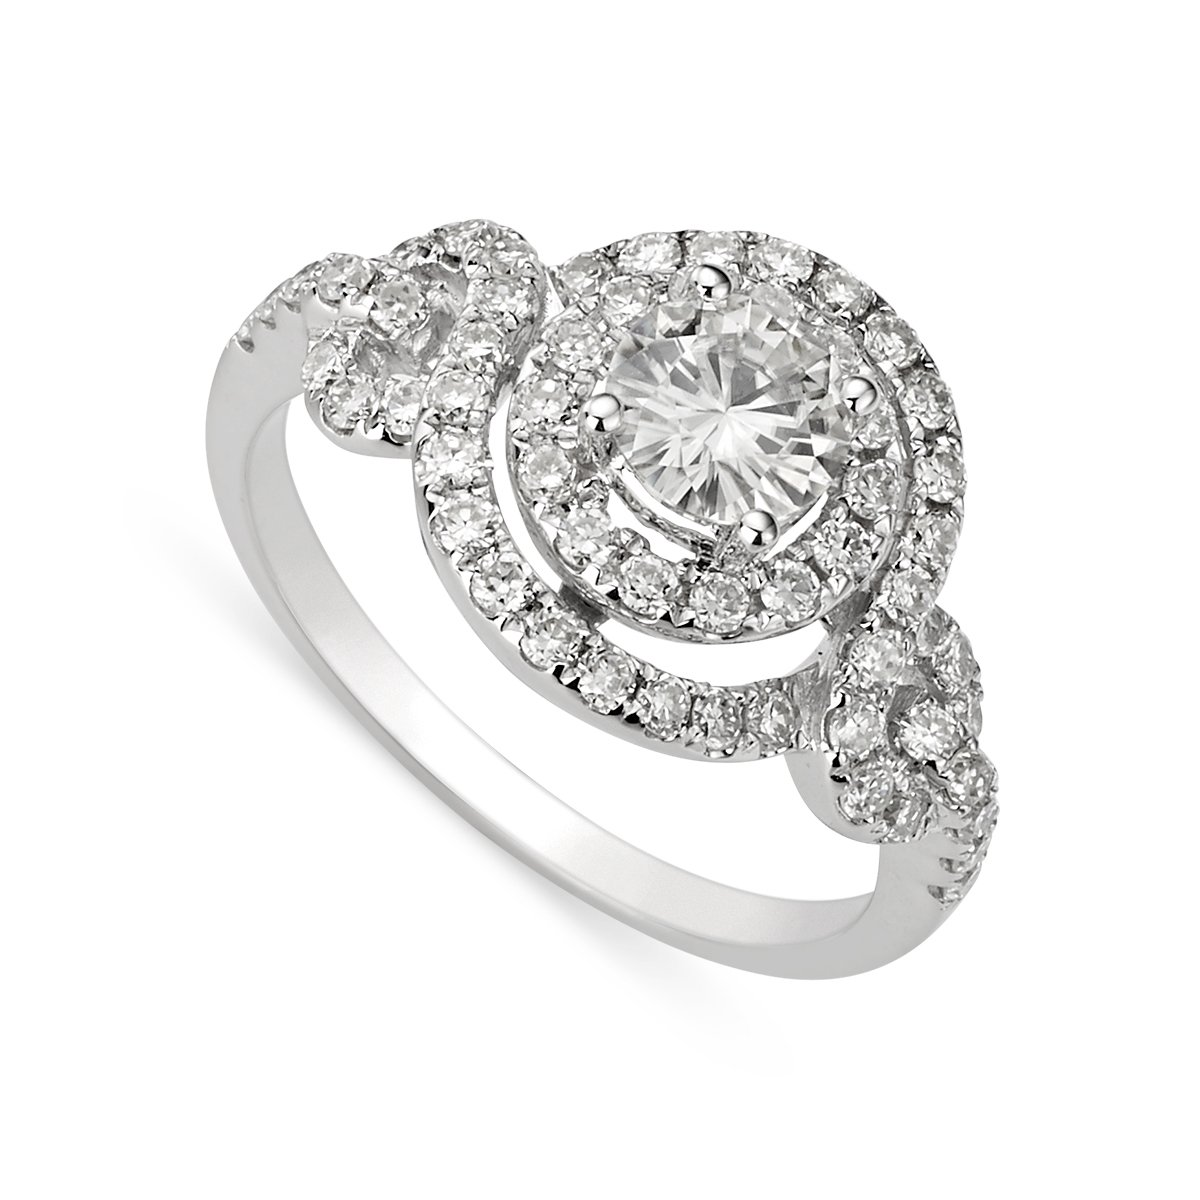 Round Brilliant Cut 5.5mm Moissanite Ring - size 7, 1.18cttw DEW By Charles & Colvard by Charles & Colvard